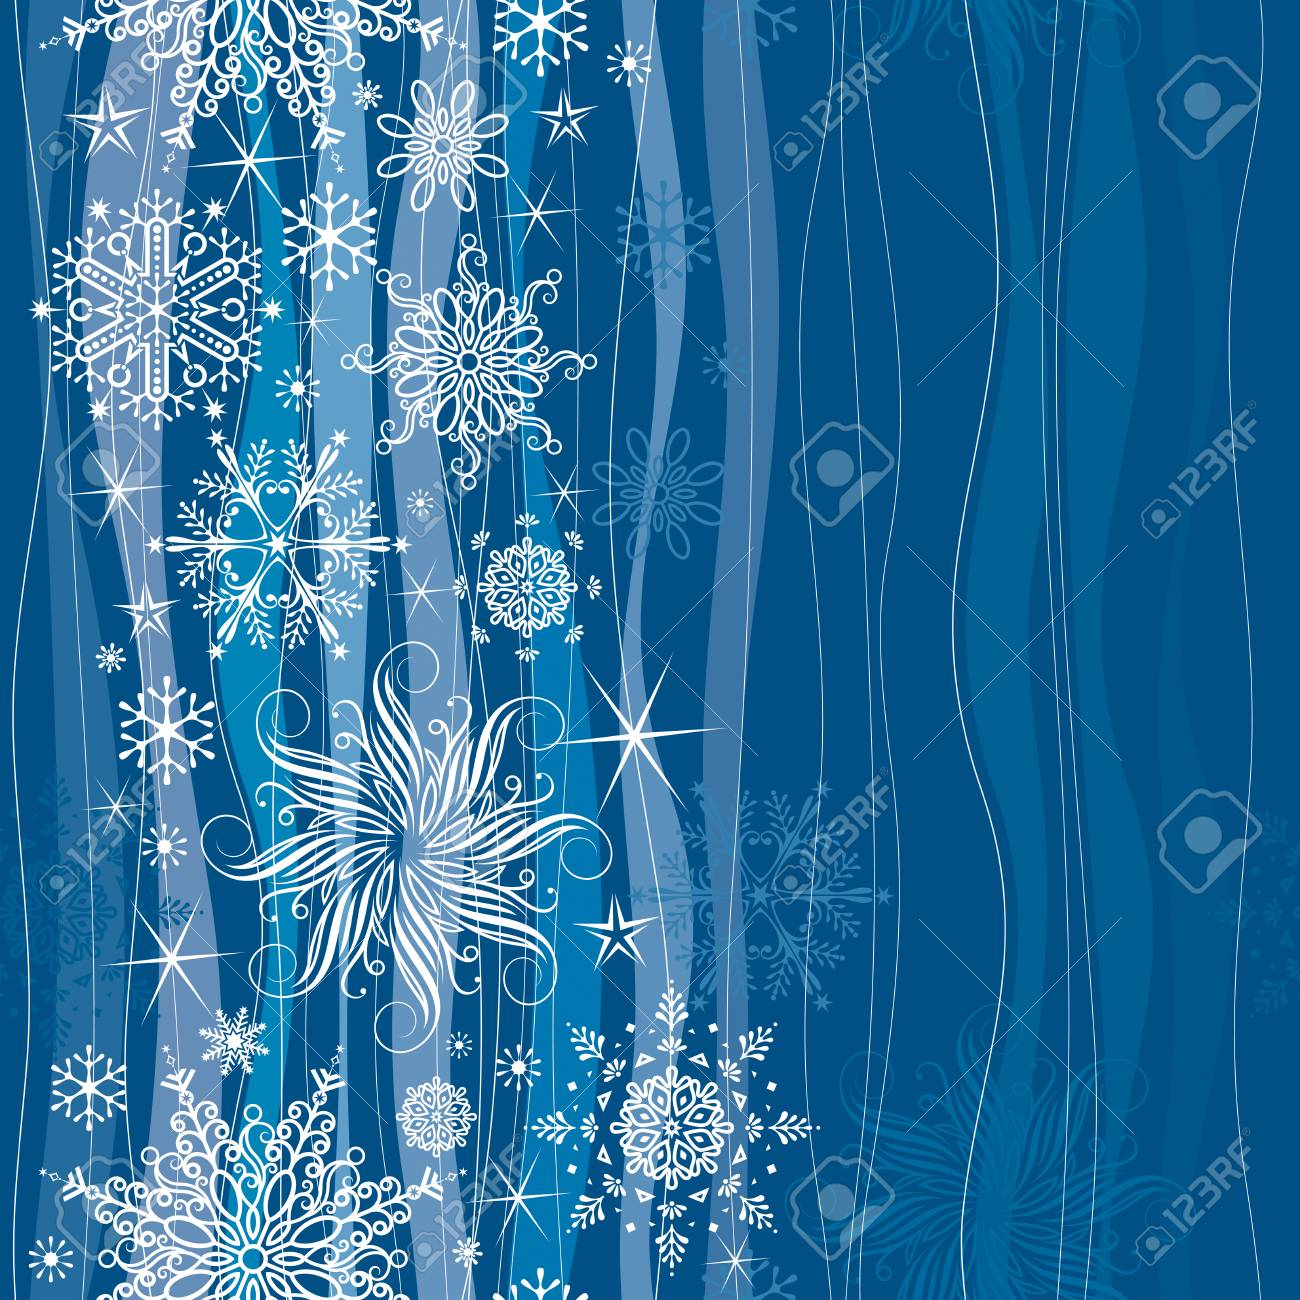 Seamless both side illustration of Christmas snowflakes. Stock Vector - 7618741